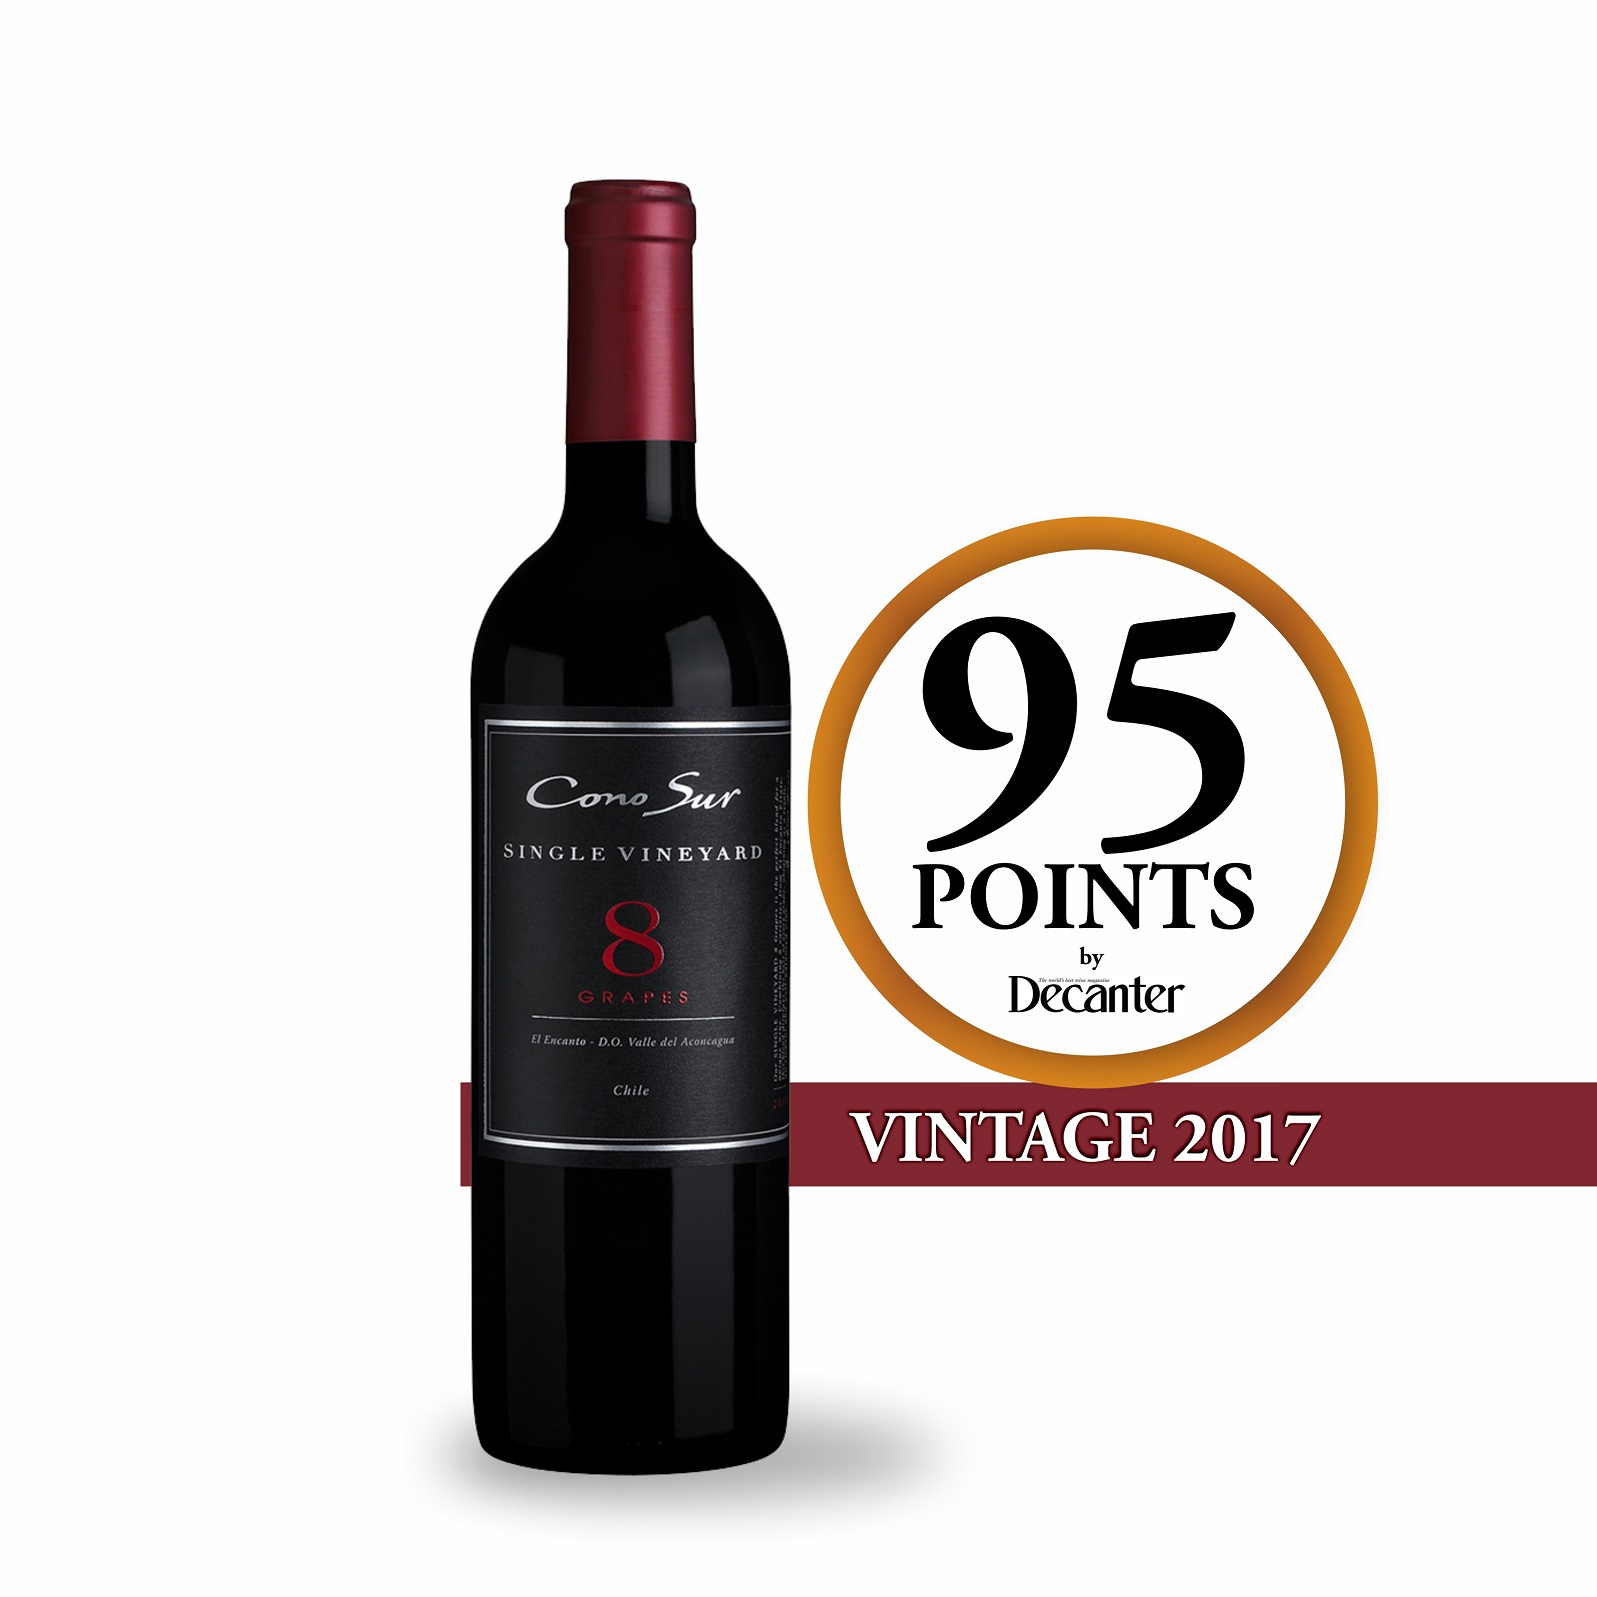 CONO SUR SINGLE VINEYARD 8 GRAPES 750ML